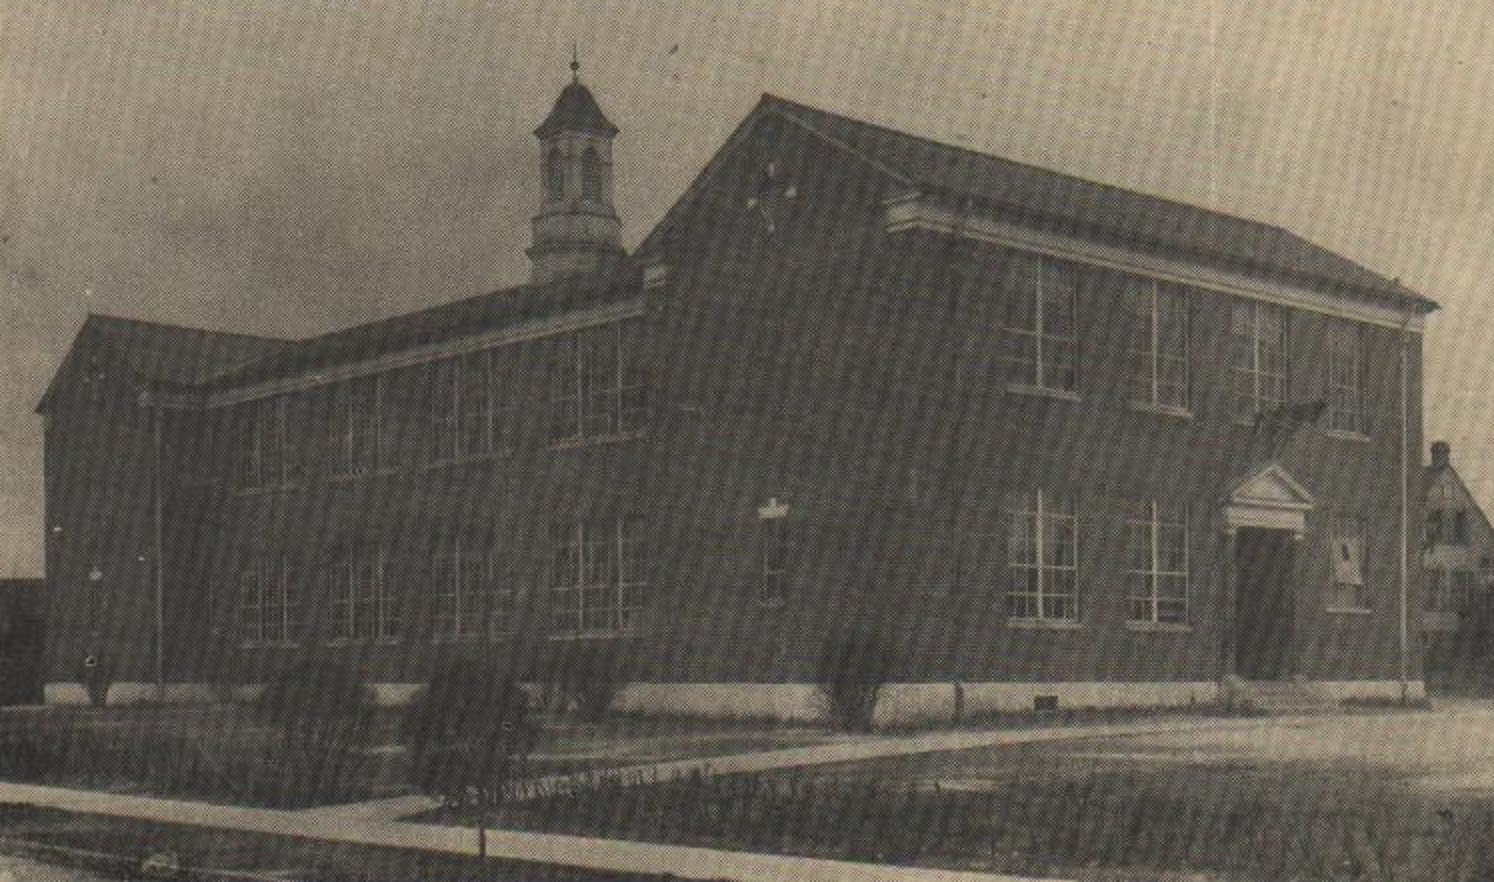 Douglass HS in 1938